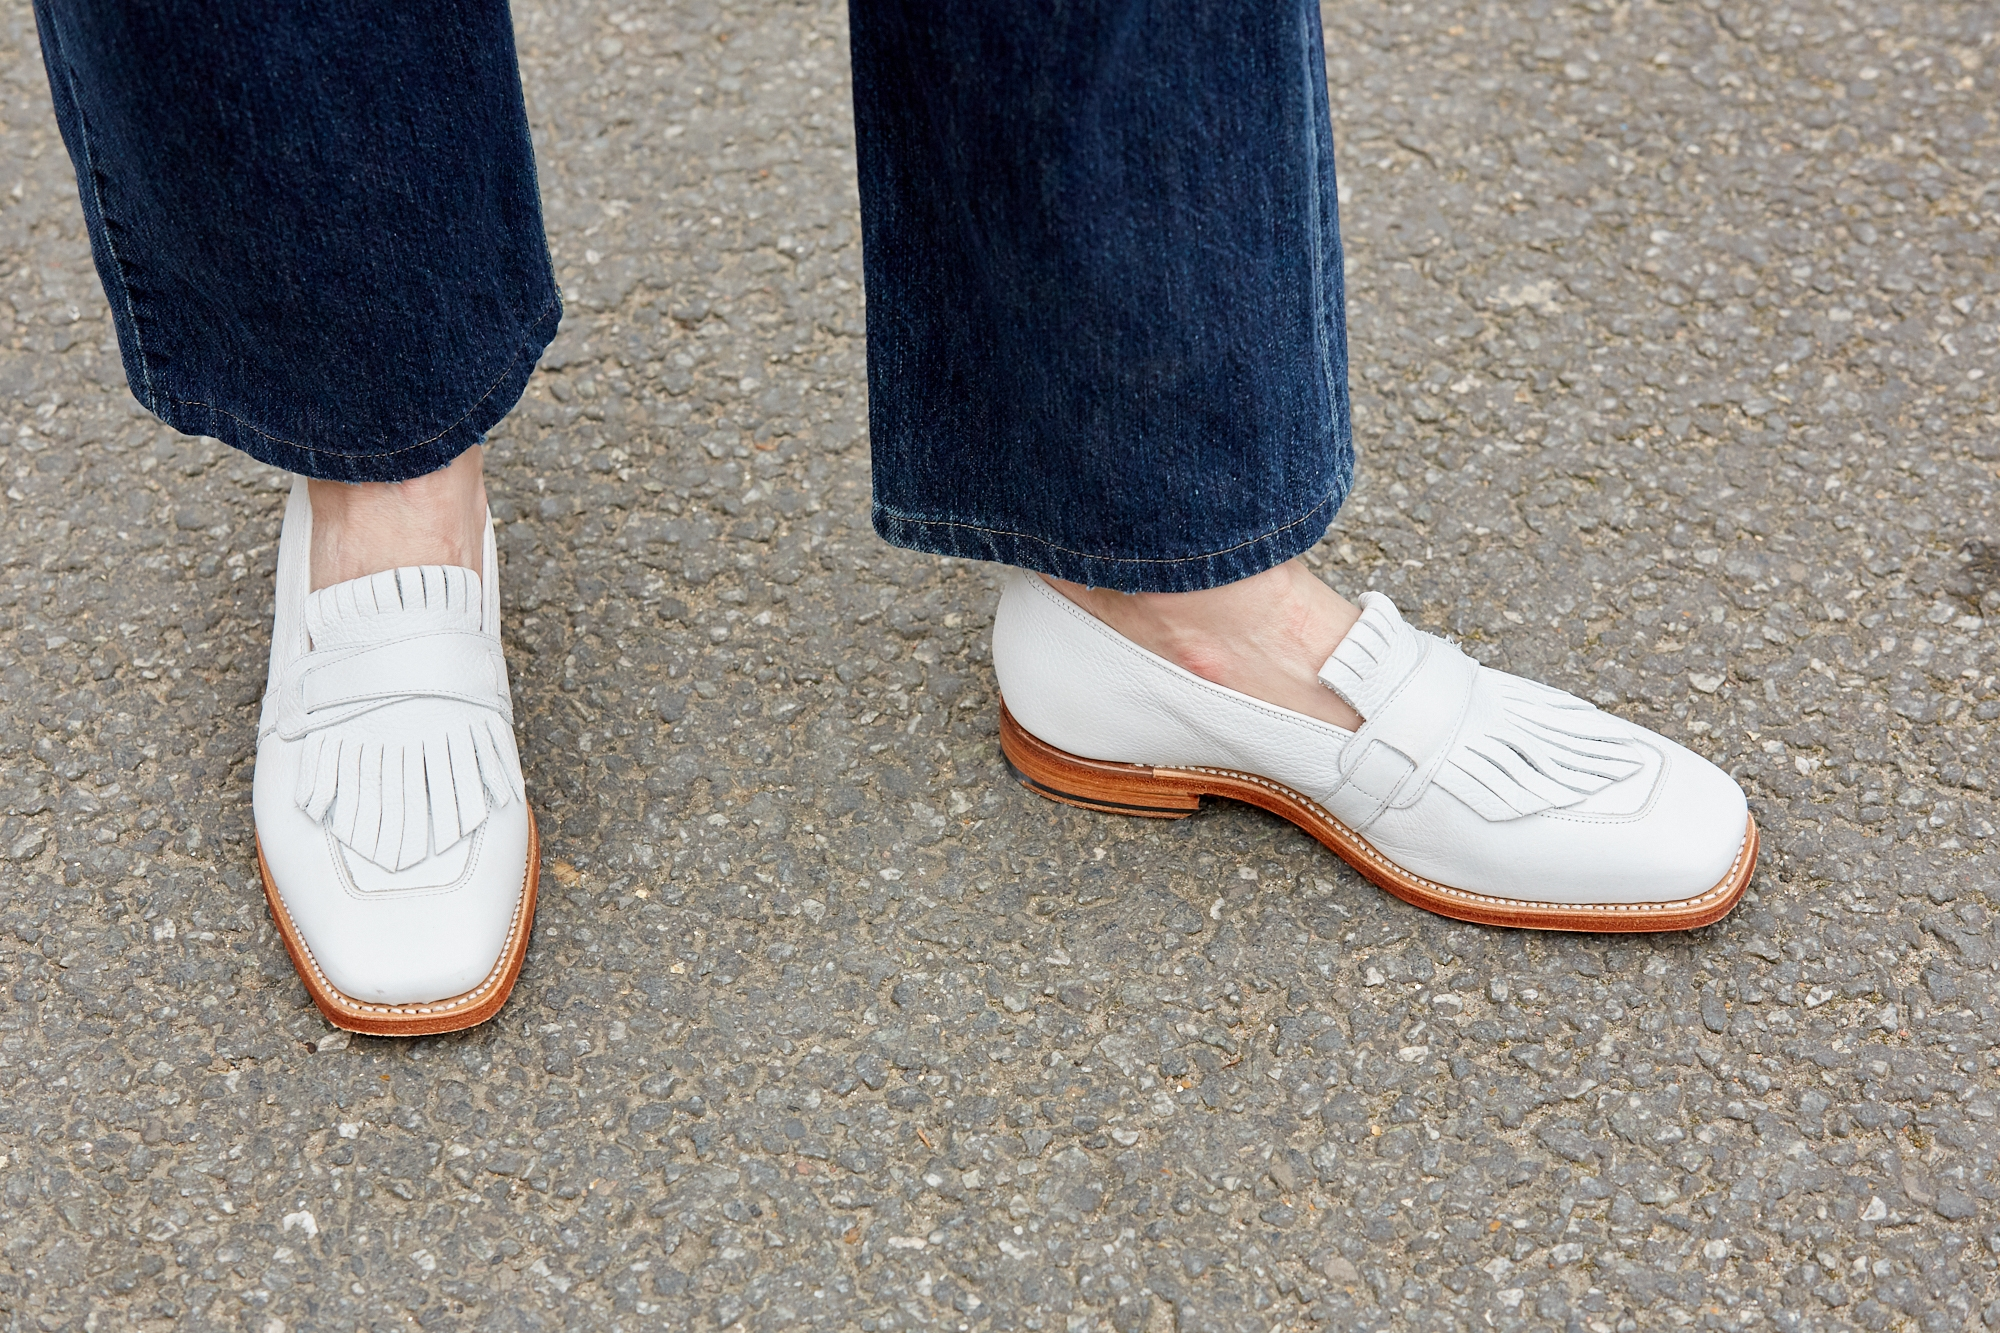 190ddac3c49fb Flat shoes forever: why I won't stop wearing comfy shoes and sneakers —  That's Not My Age